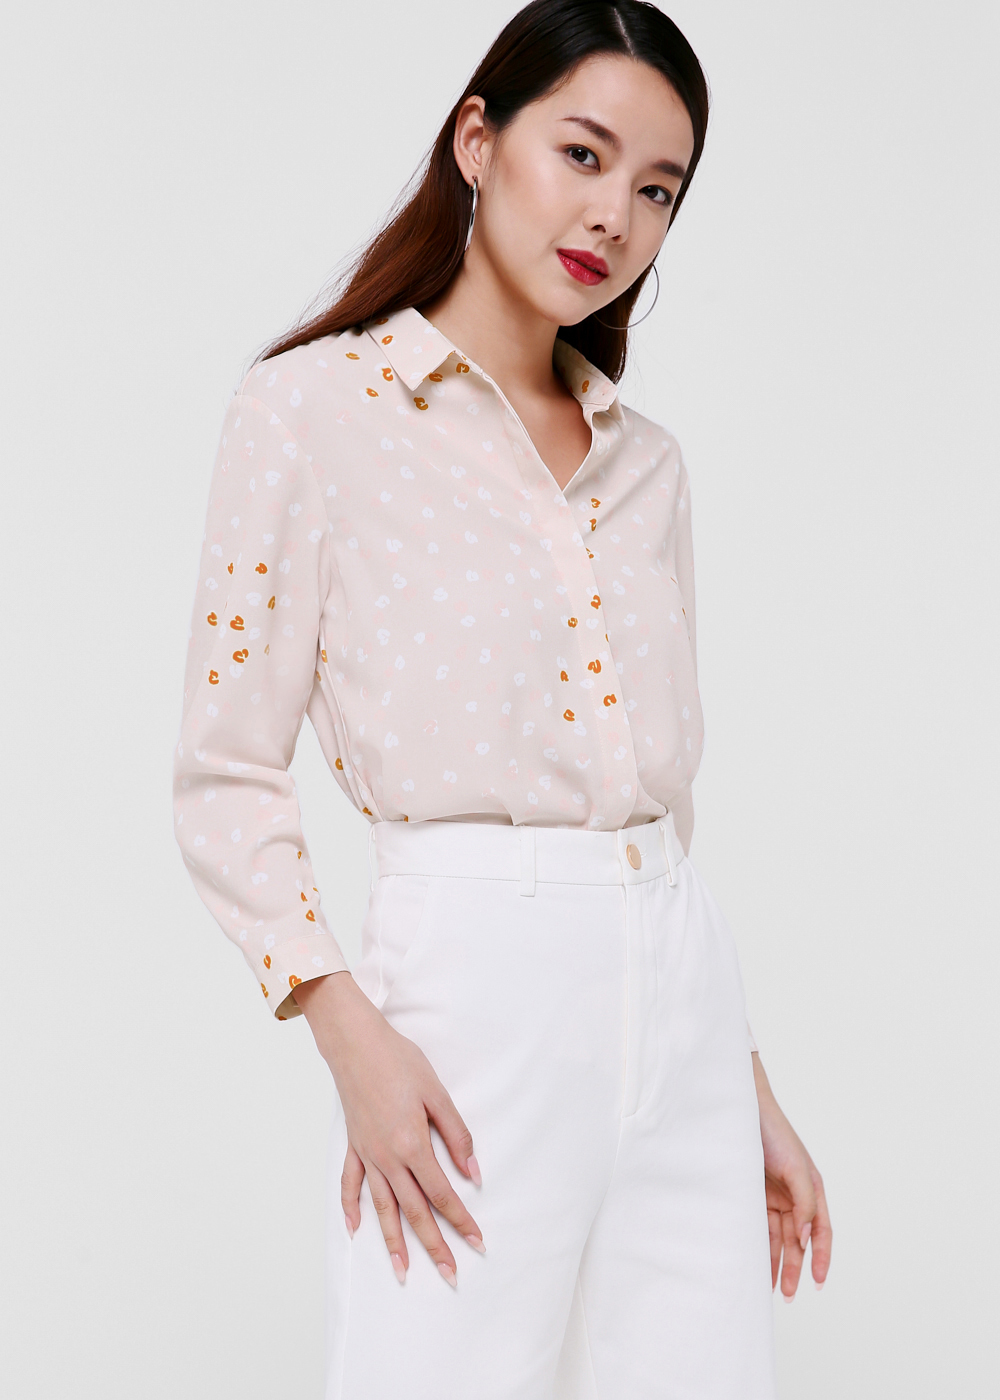 Navaeh Printed Shirt in Starburst Confetti